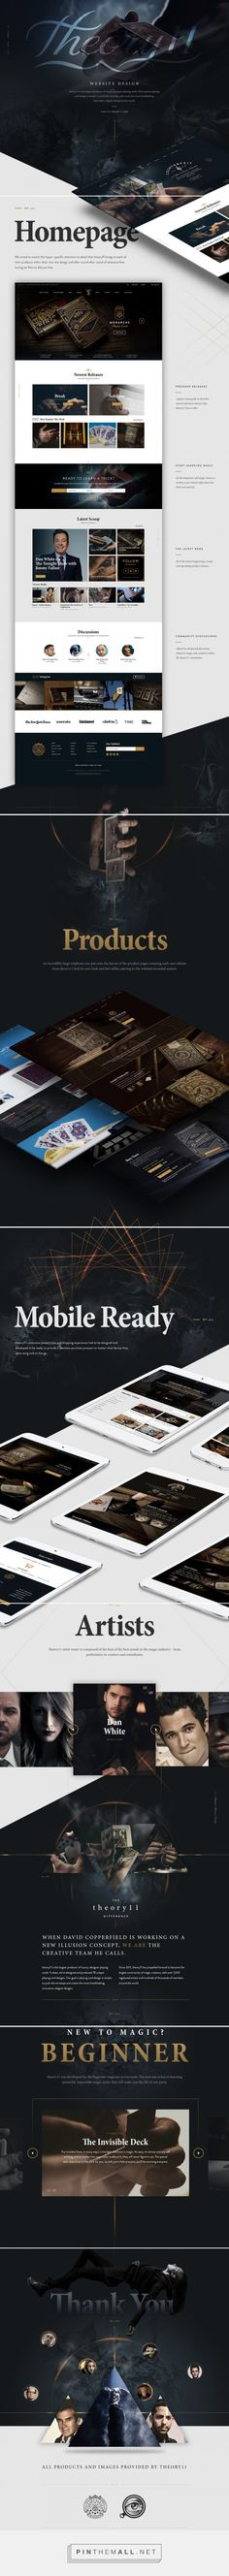 theory11 Website on Behance - created via https://pinthemall.net